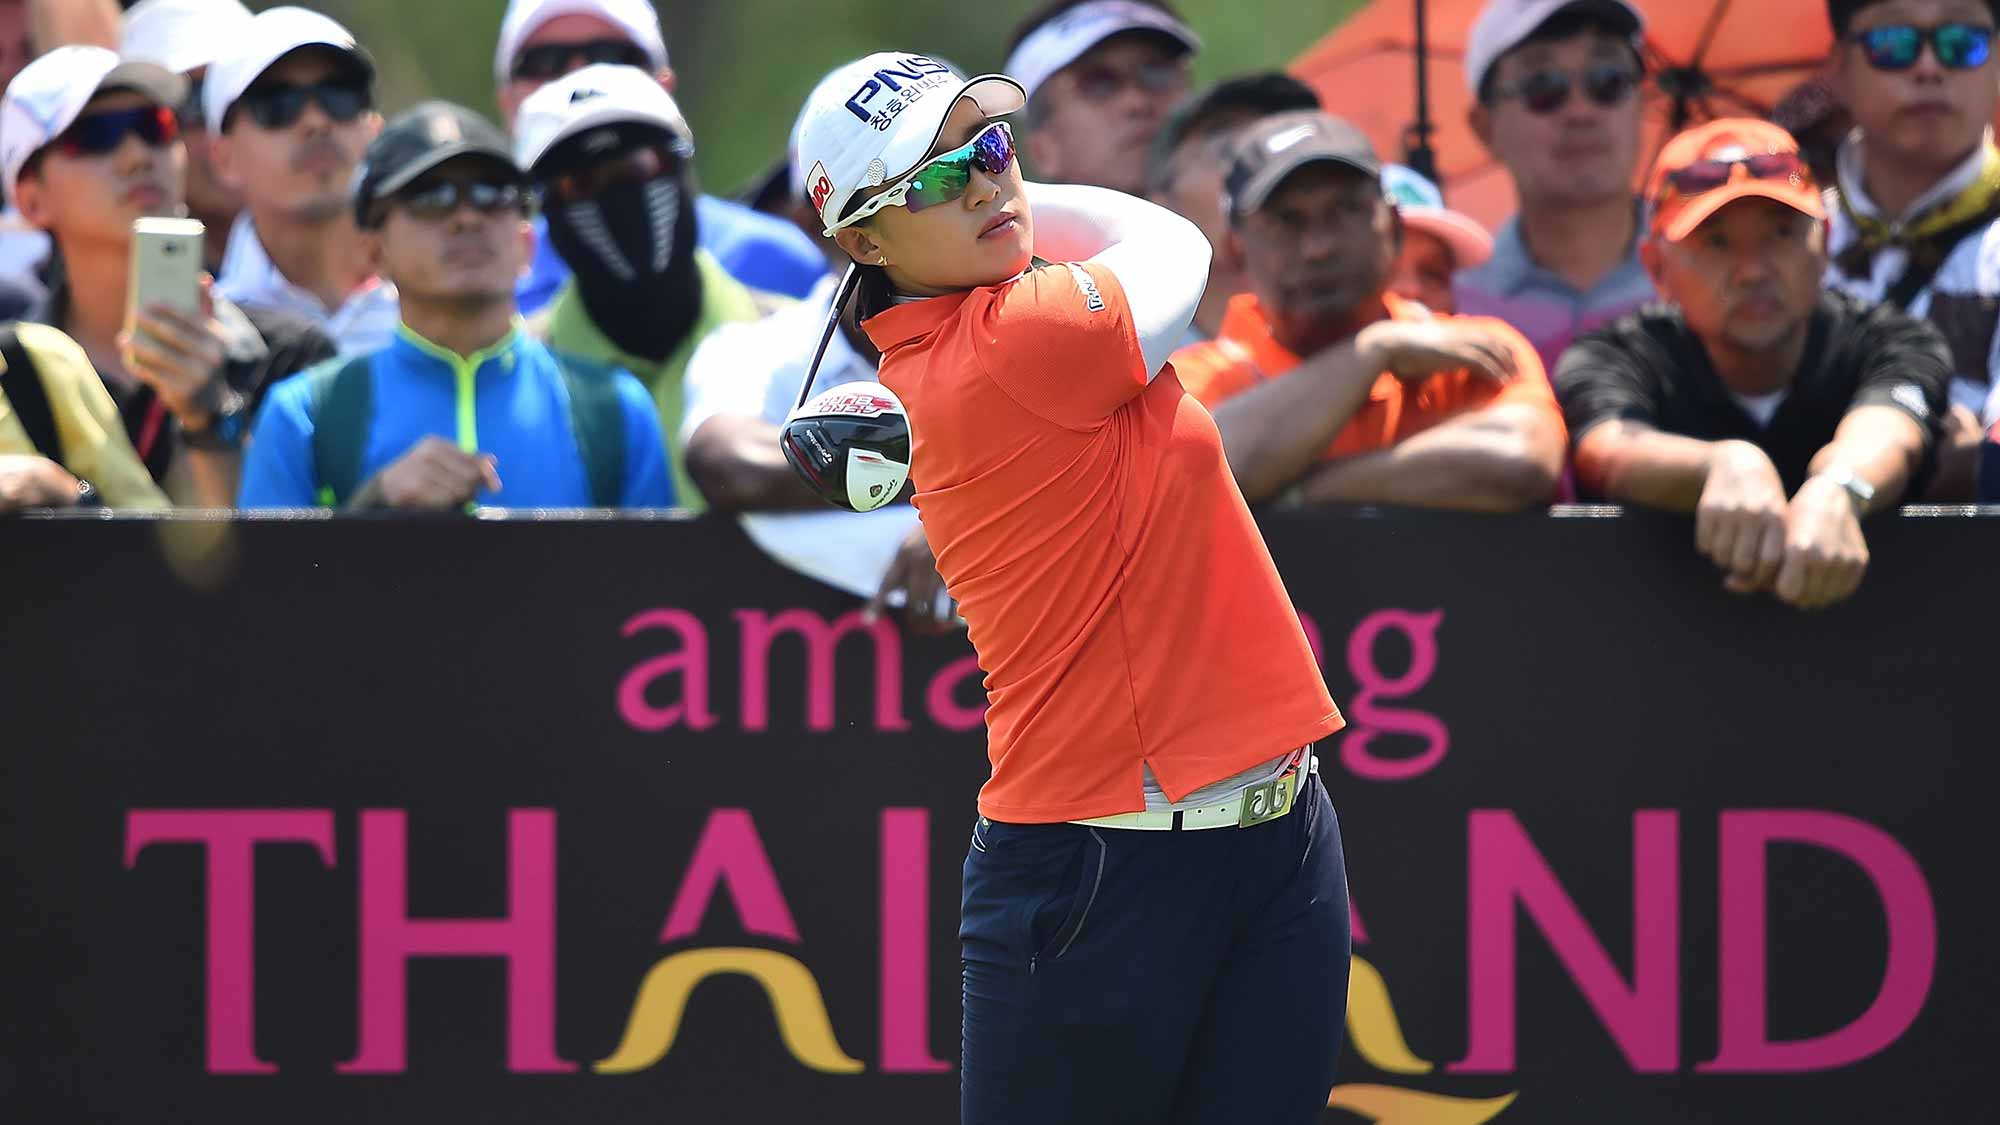 Amy Yang of South Korea plays a shot during day four of the 2016 Honda LPGA Thailand at Siam Country Club